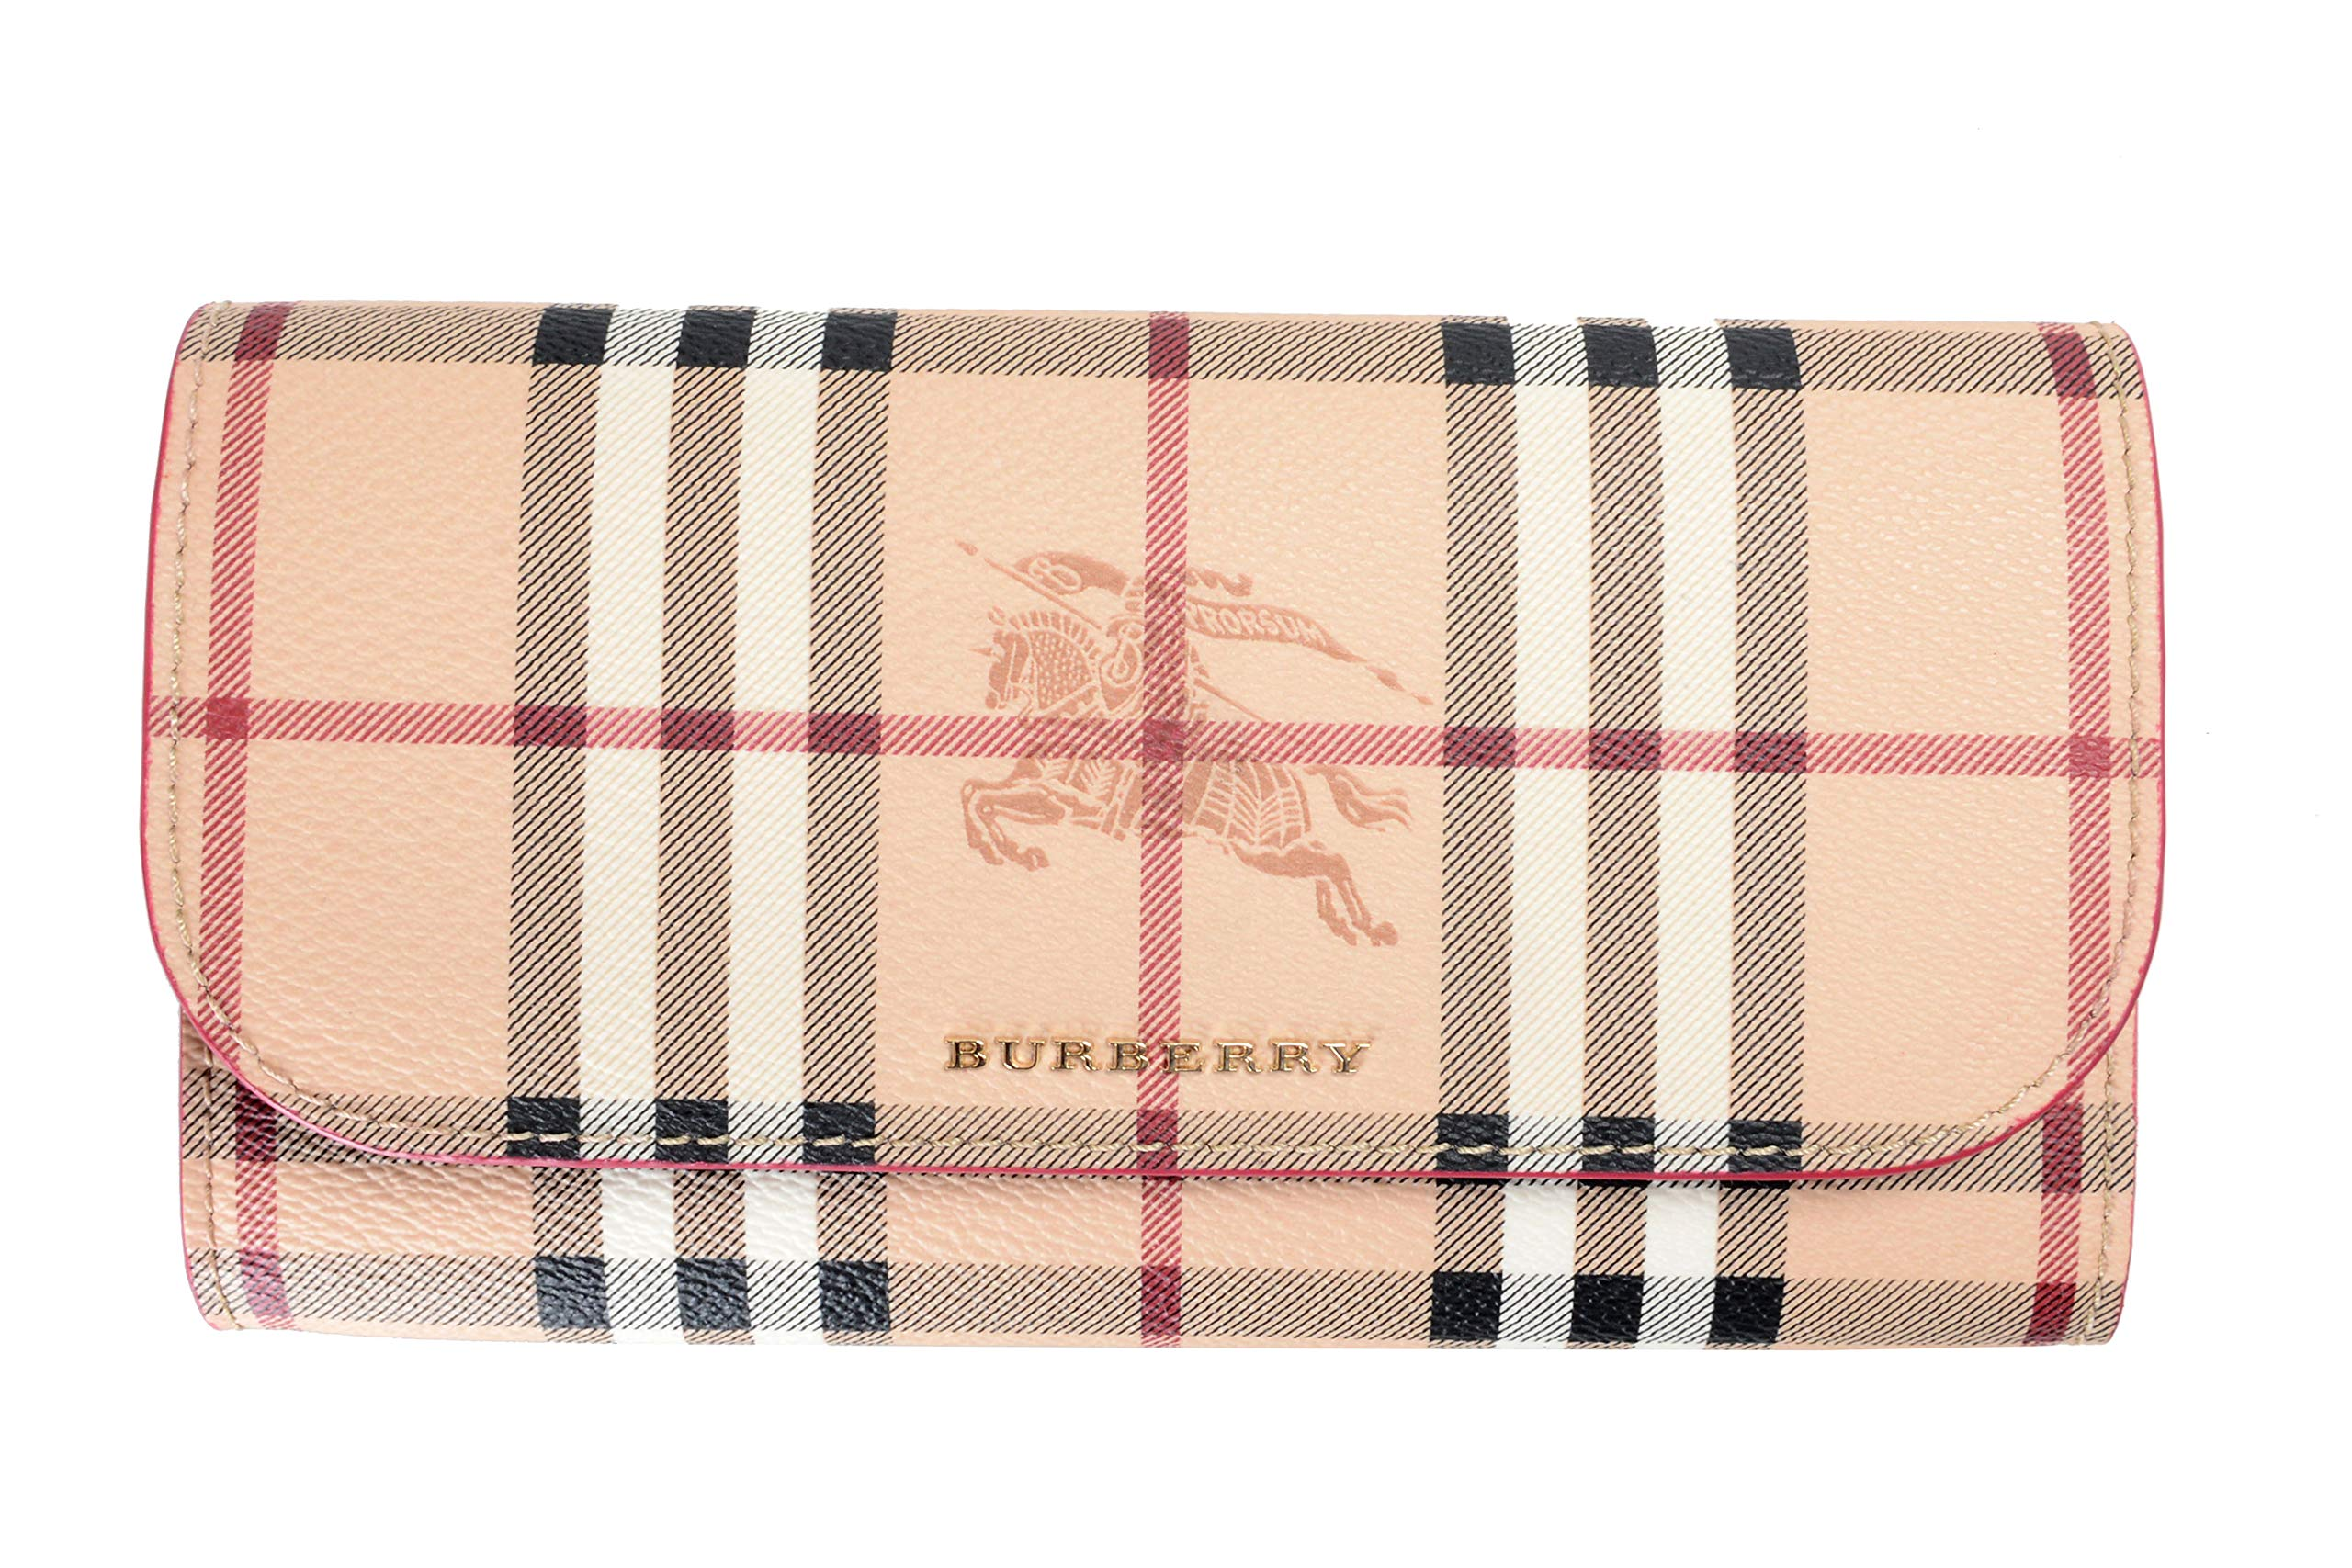 Burberry 100% Leather Multi-Color Checkered Women's Clutch Wallet